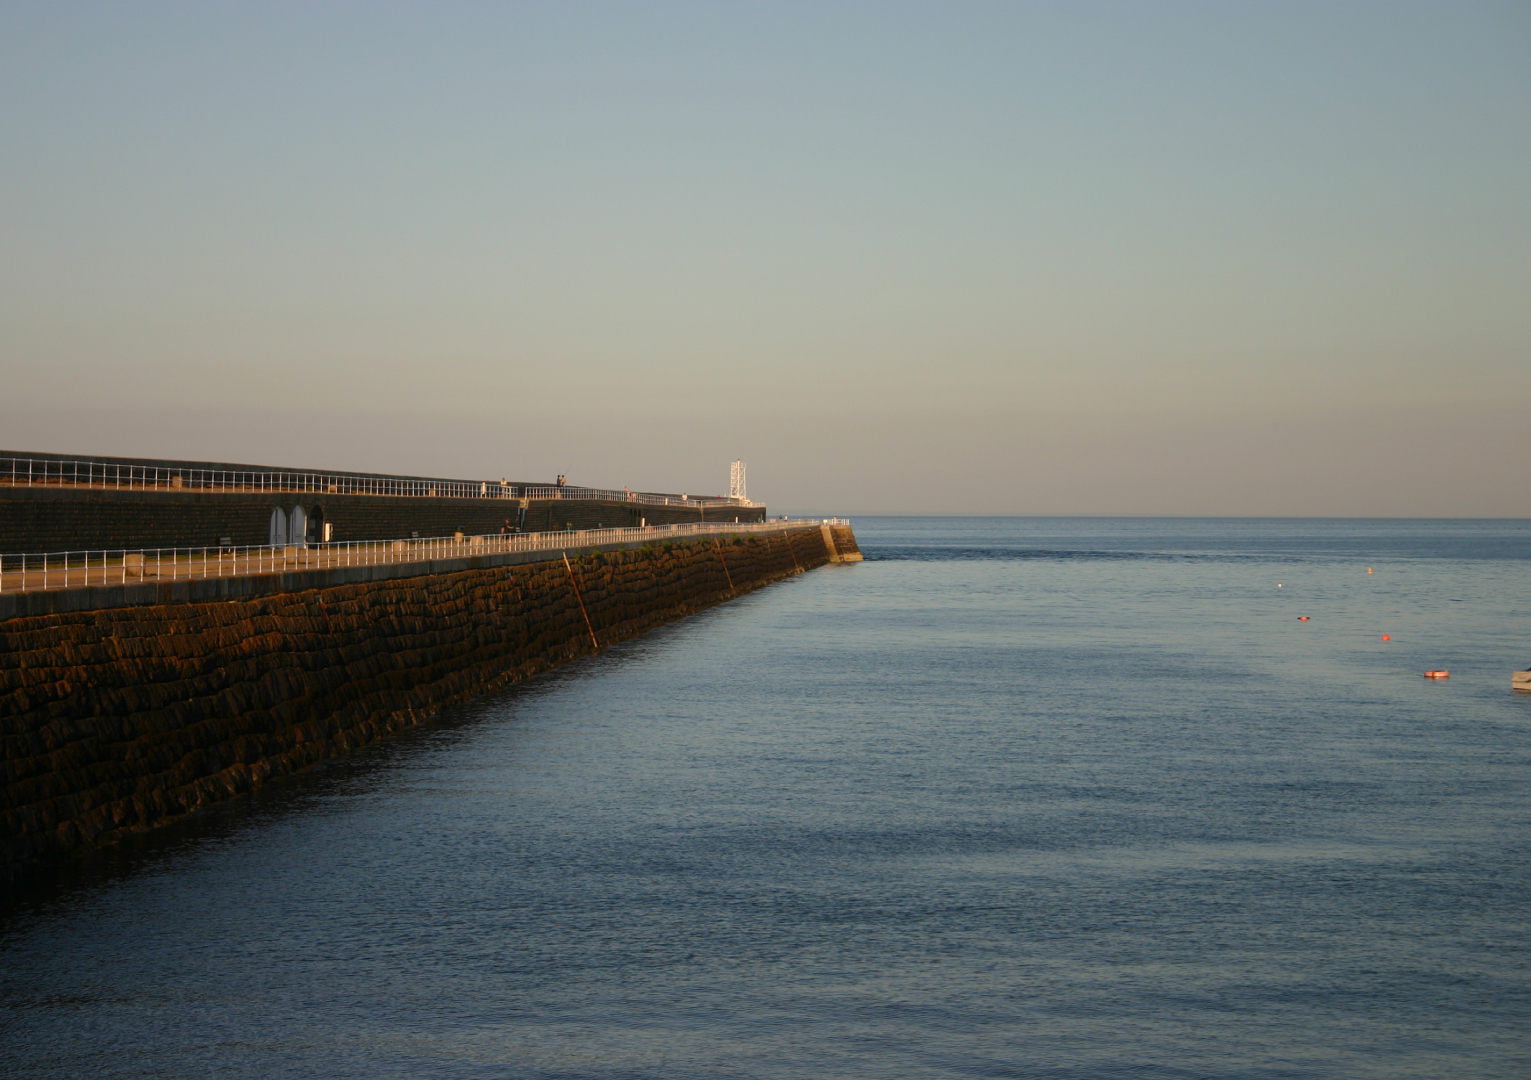 St. Catherines Breakwater